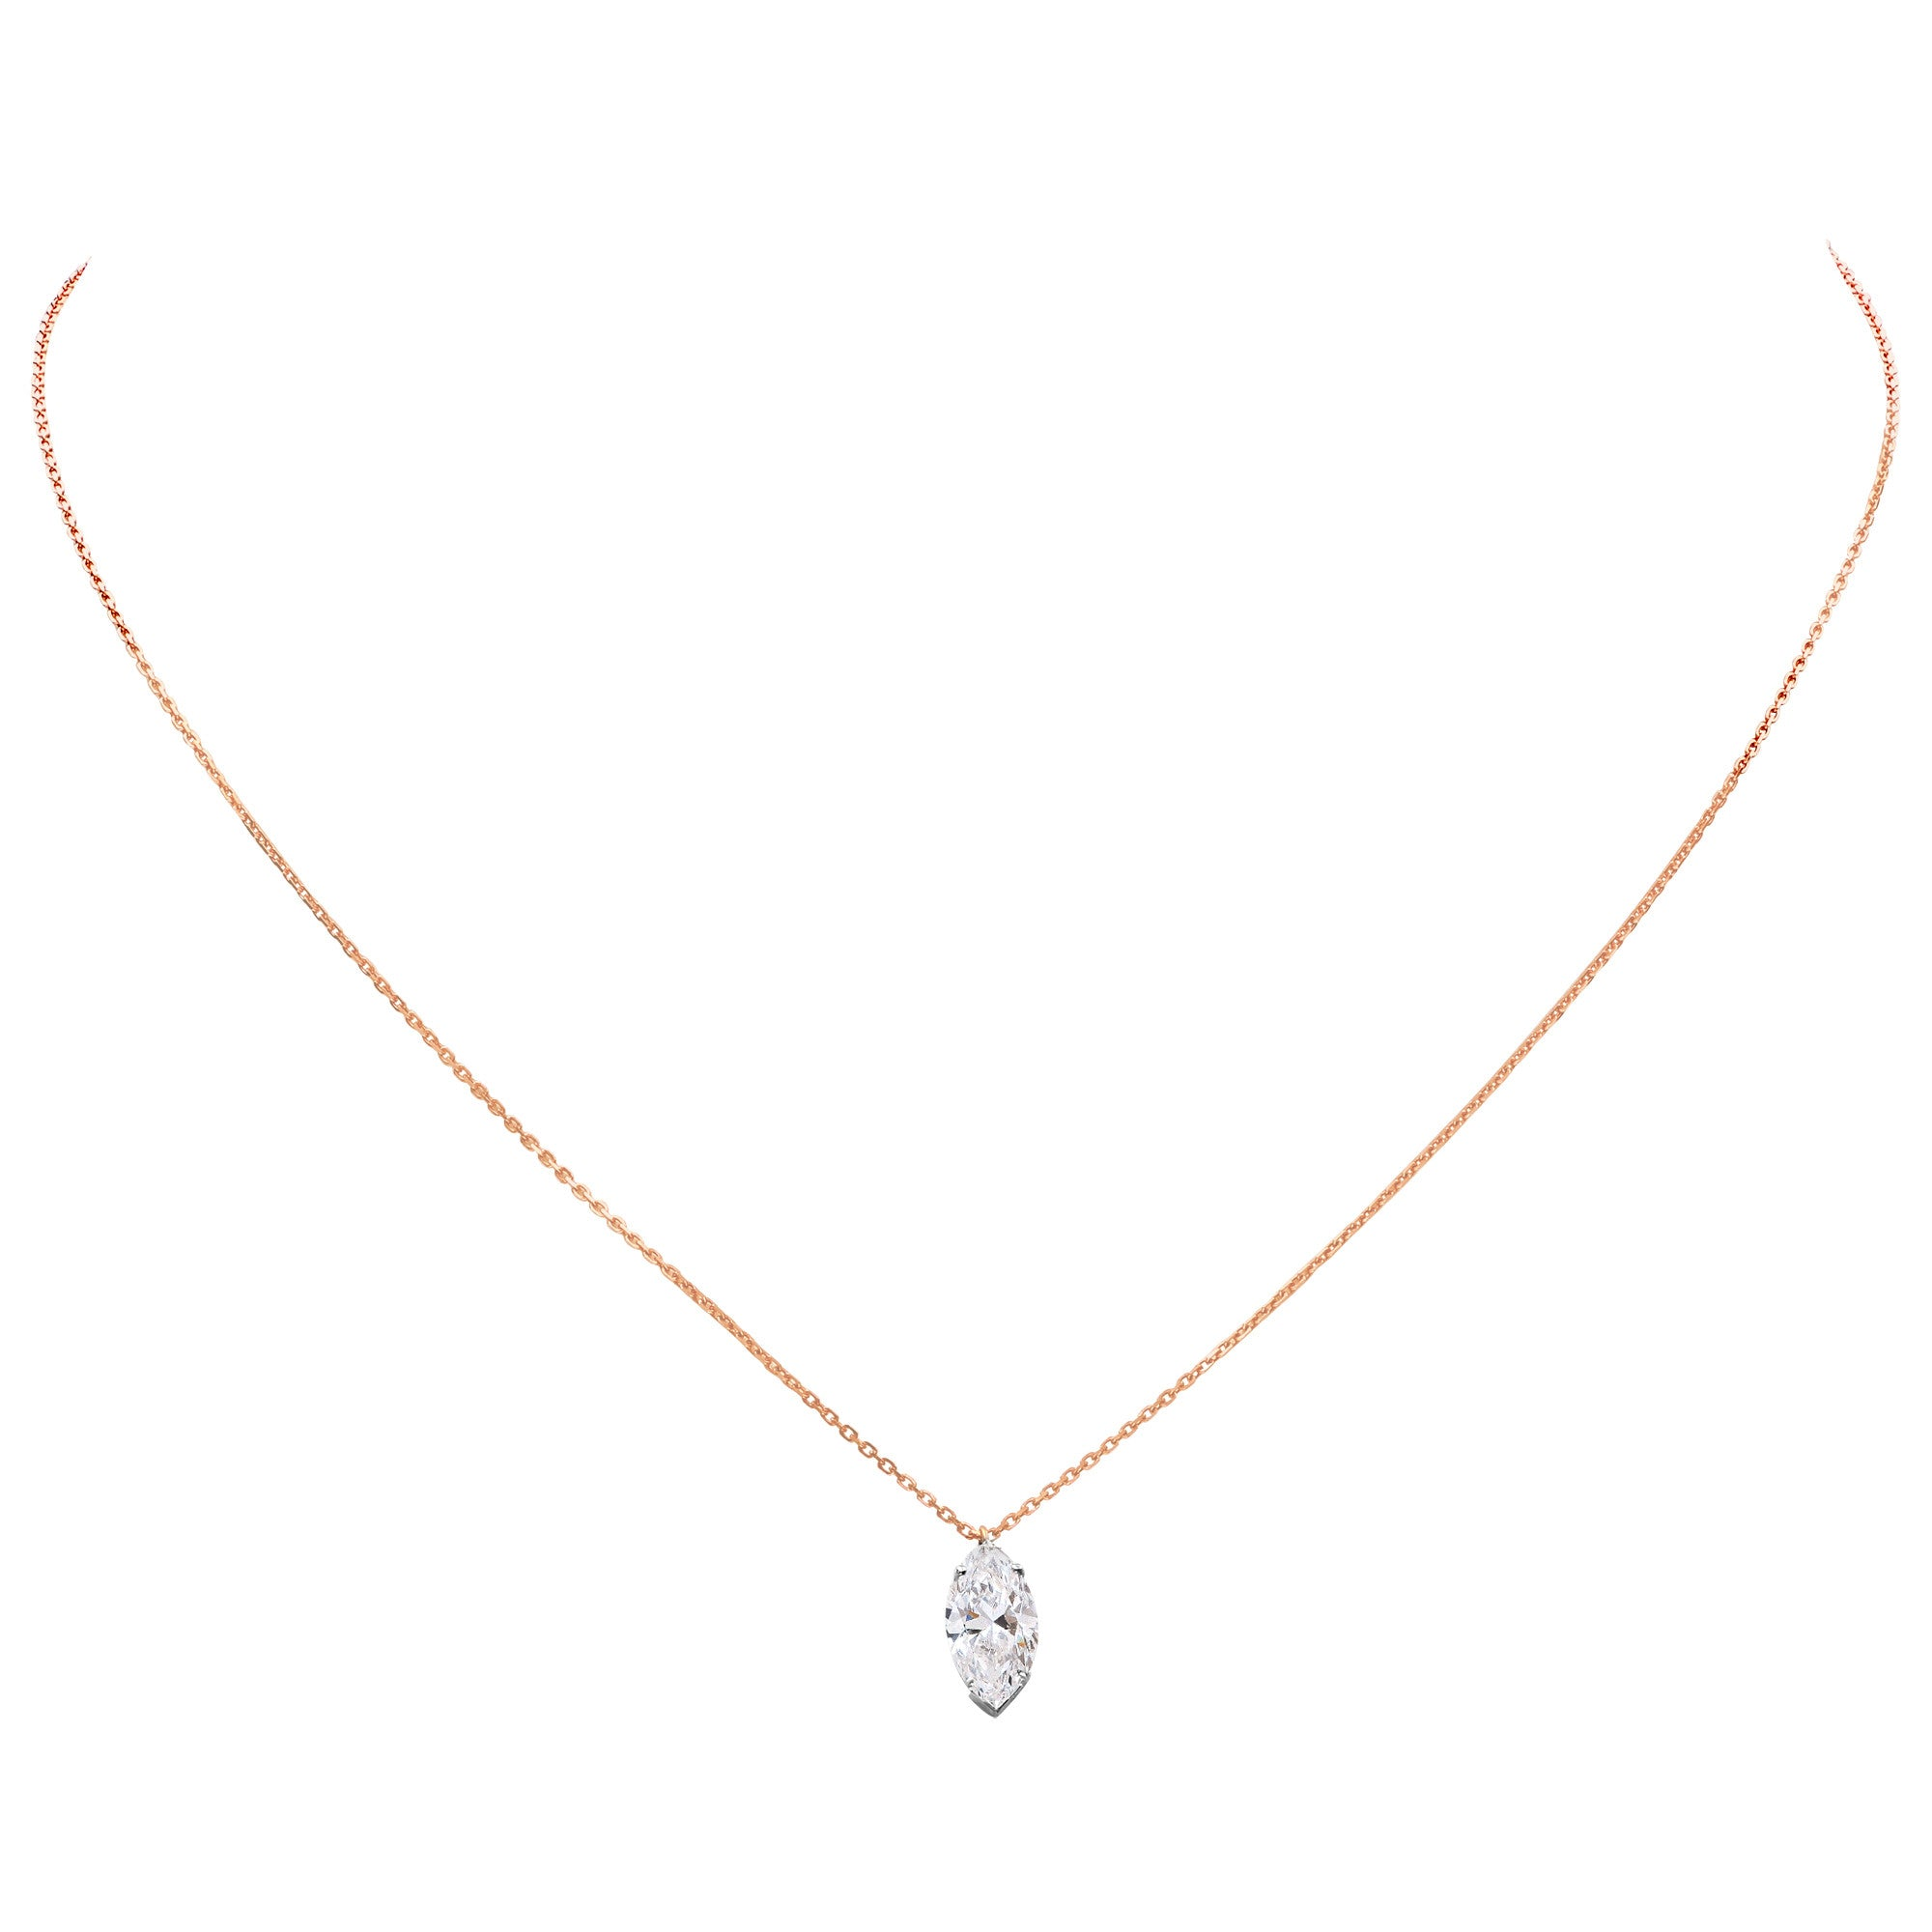 necklace cartier cut pendant marquis diamond expertissim heart